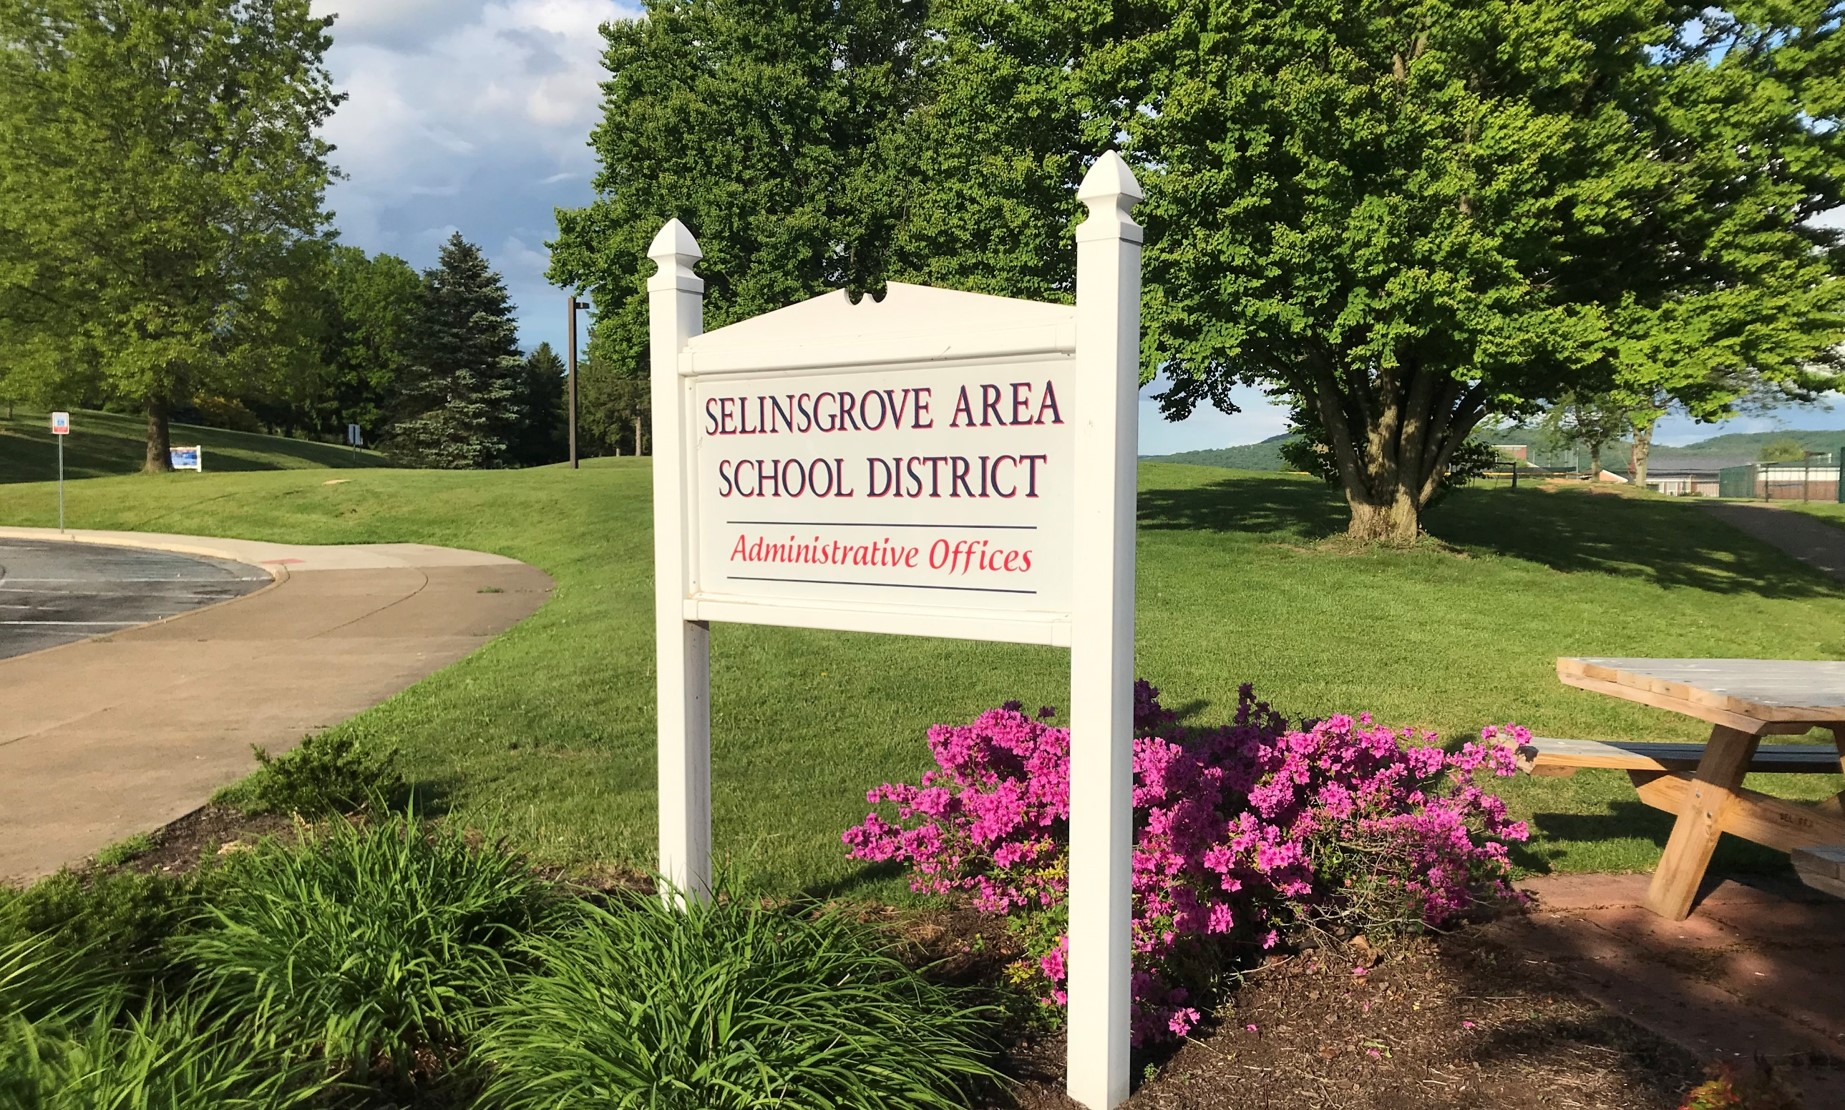 Selinsgrove Area School District Administrative Office